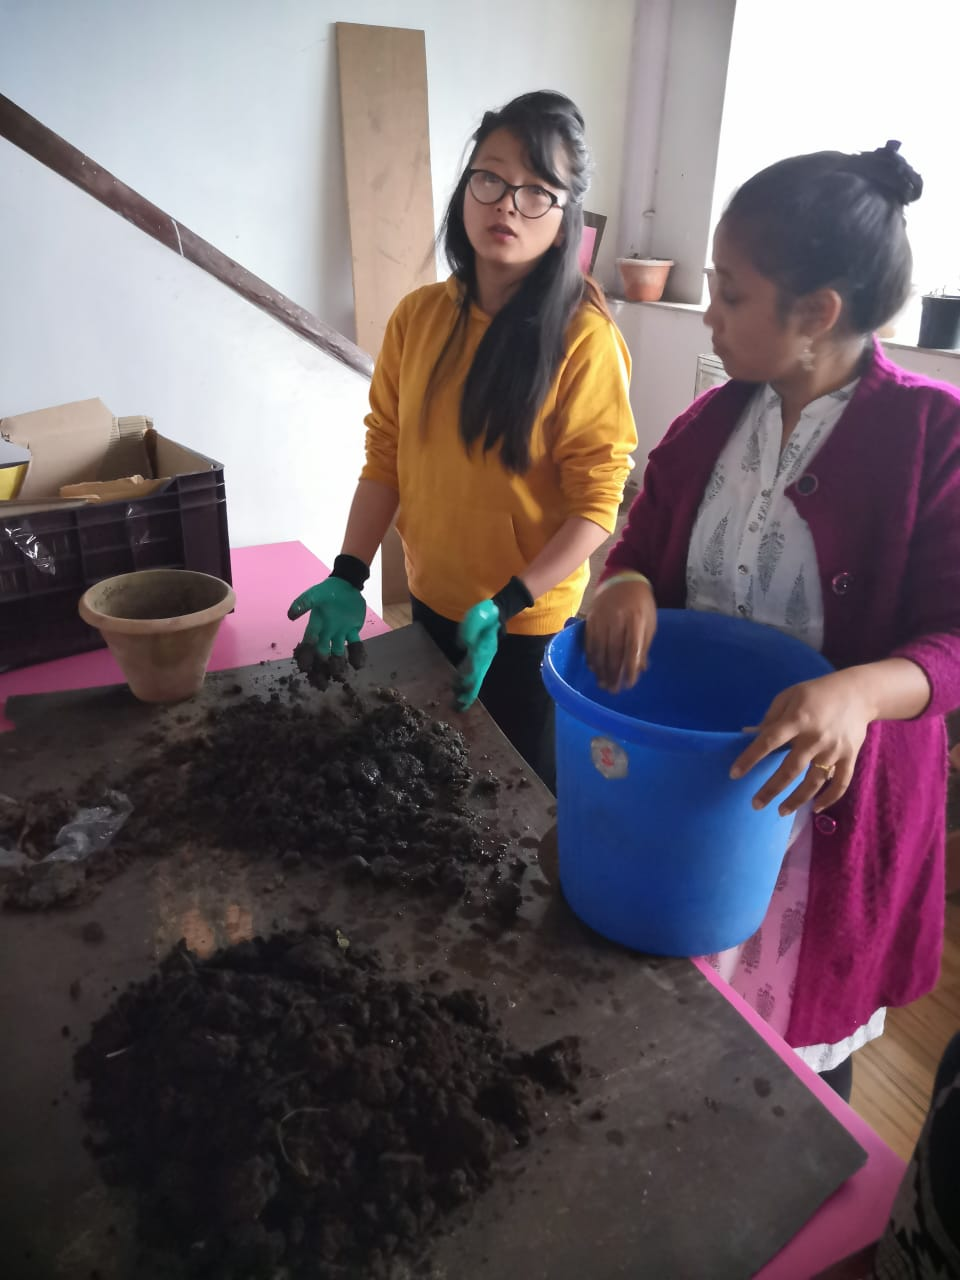 Junu Pundi Lepcha and Shobhna Gupta of the Sustainable Sikkim Team, setting up the Vermiculture Project